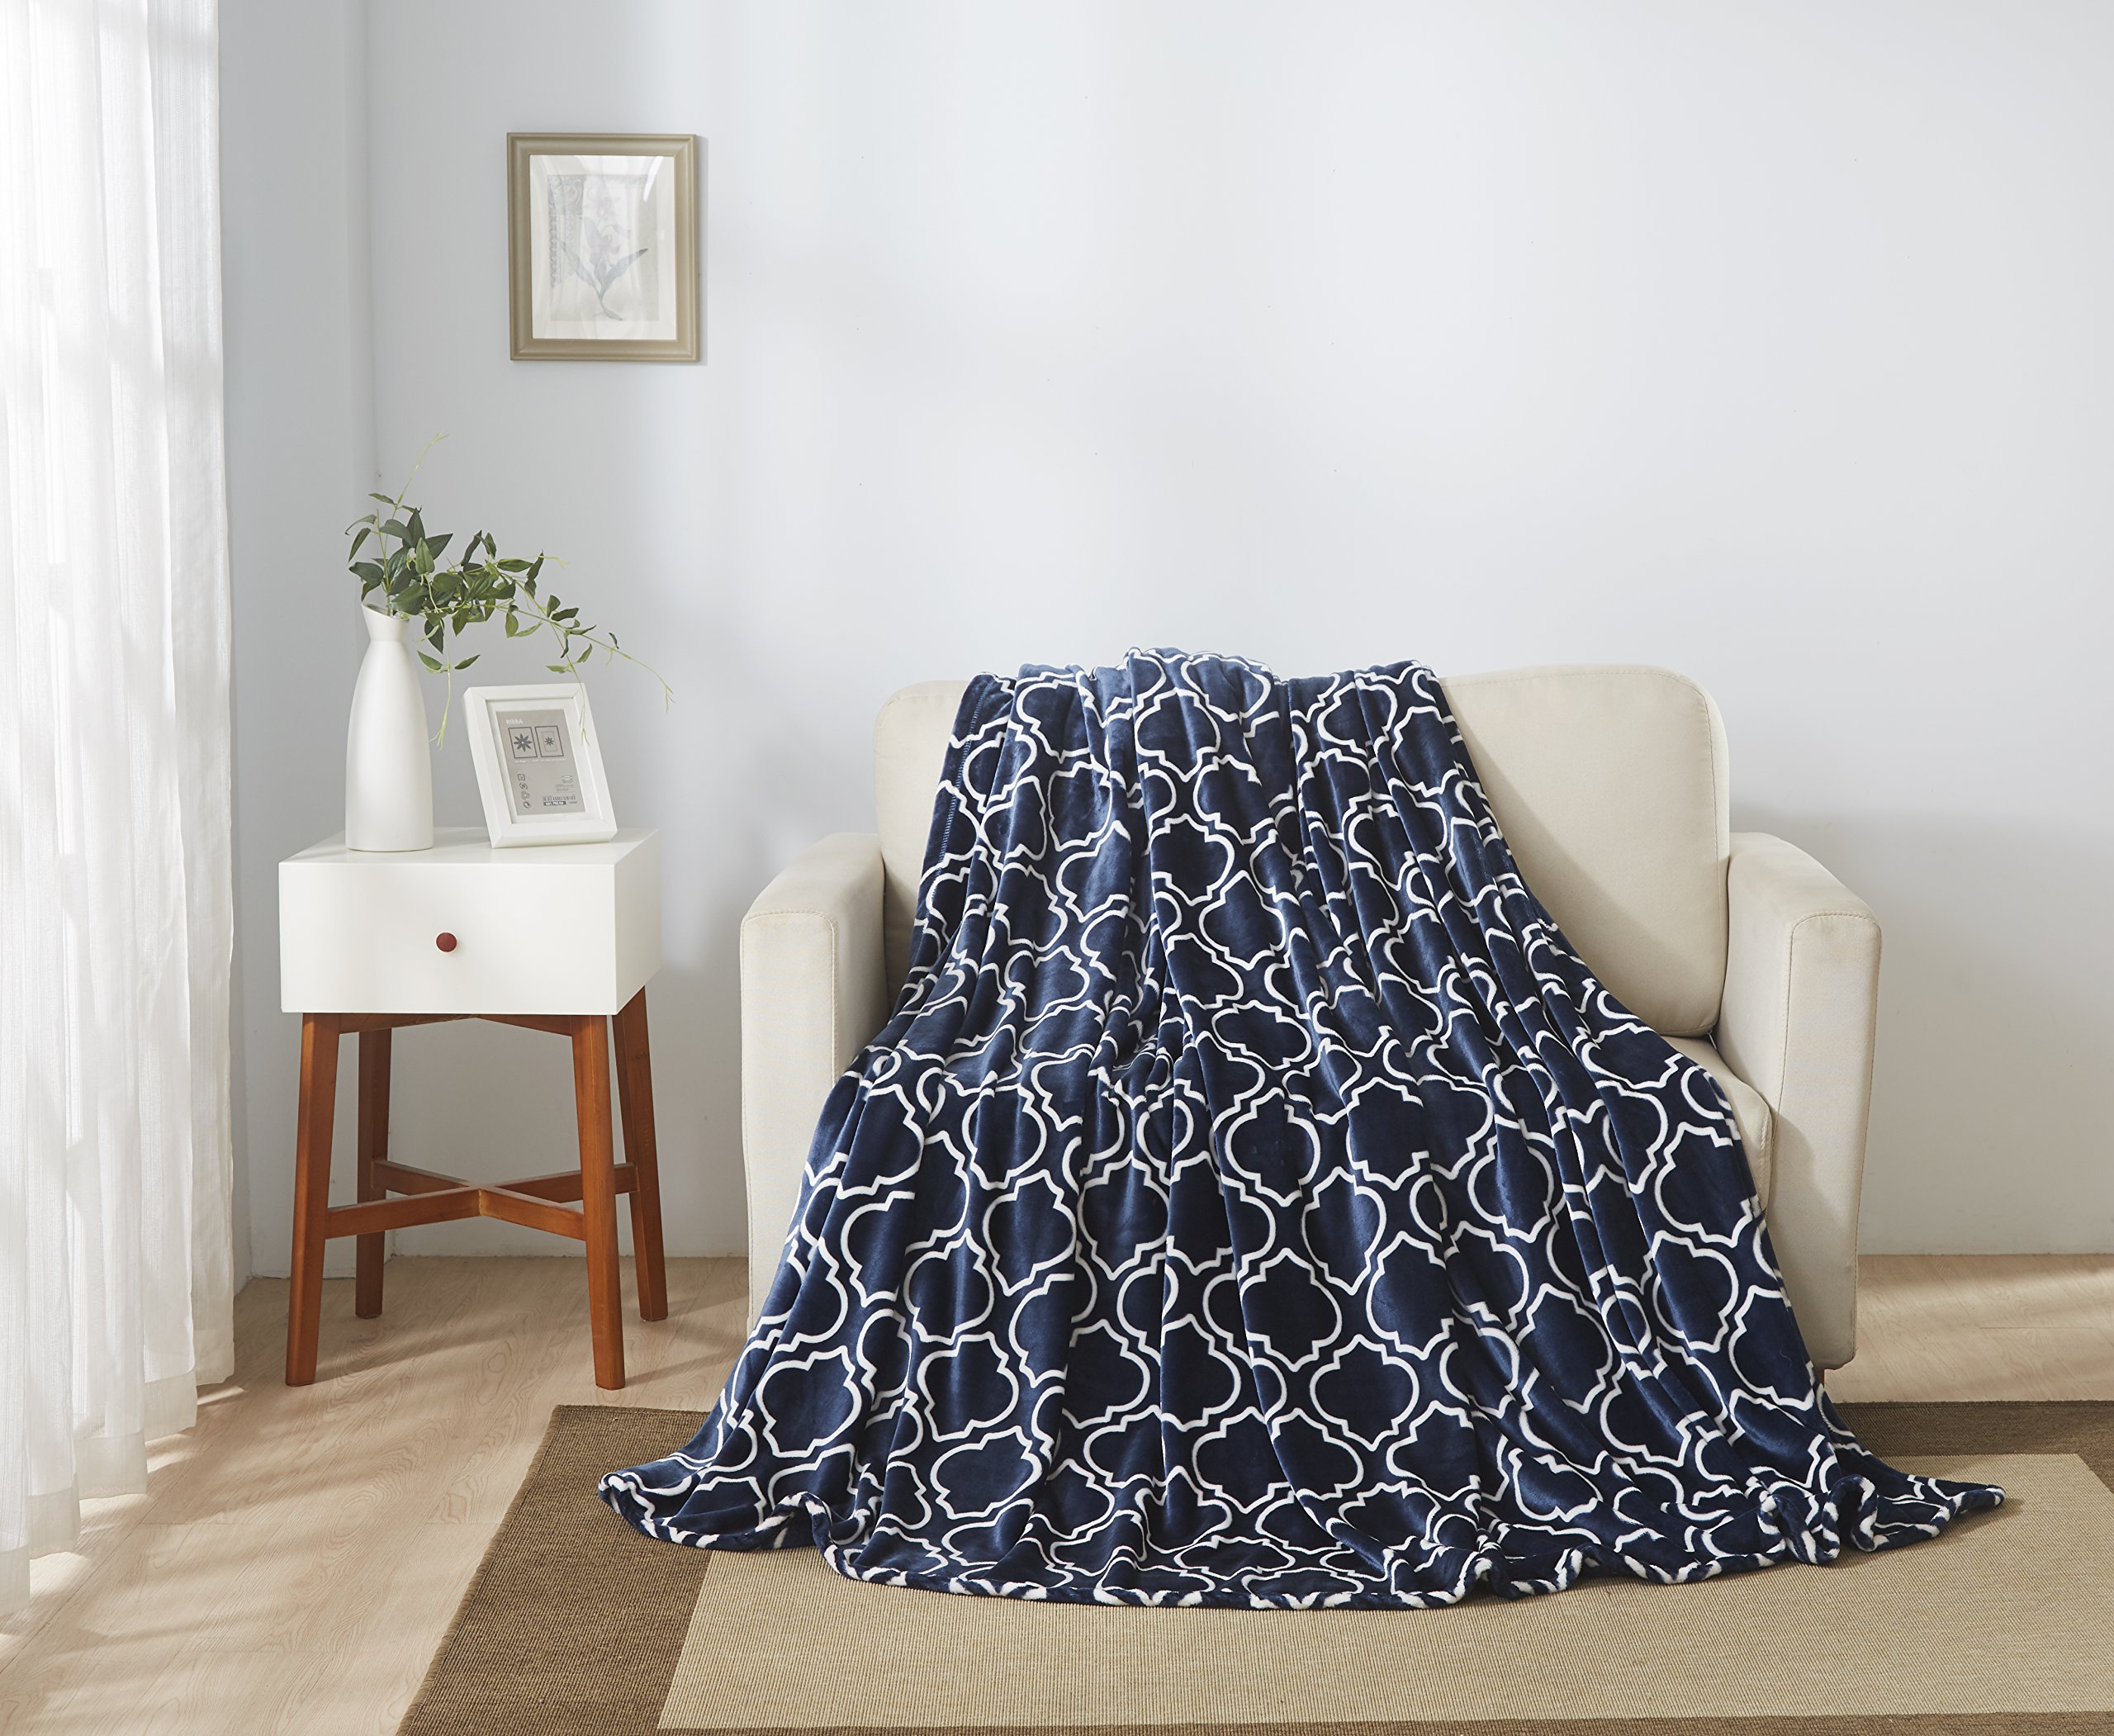 All American Collection New Super Soft Printed Moroccan Trellis Throw Blanket (Queen Size, Navy Blue)